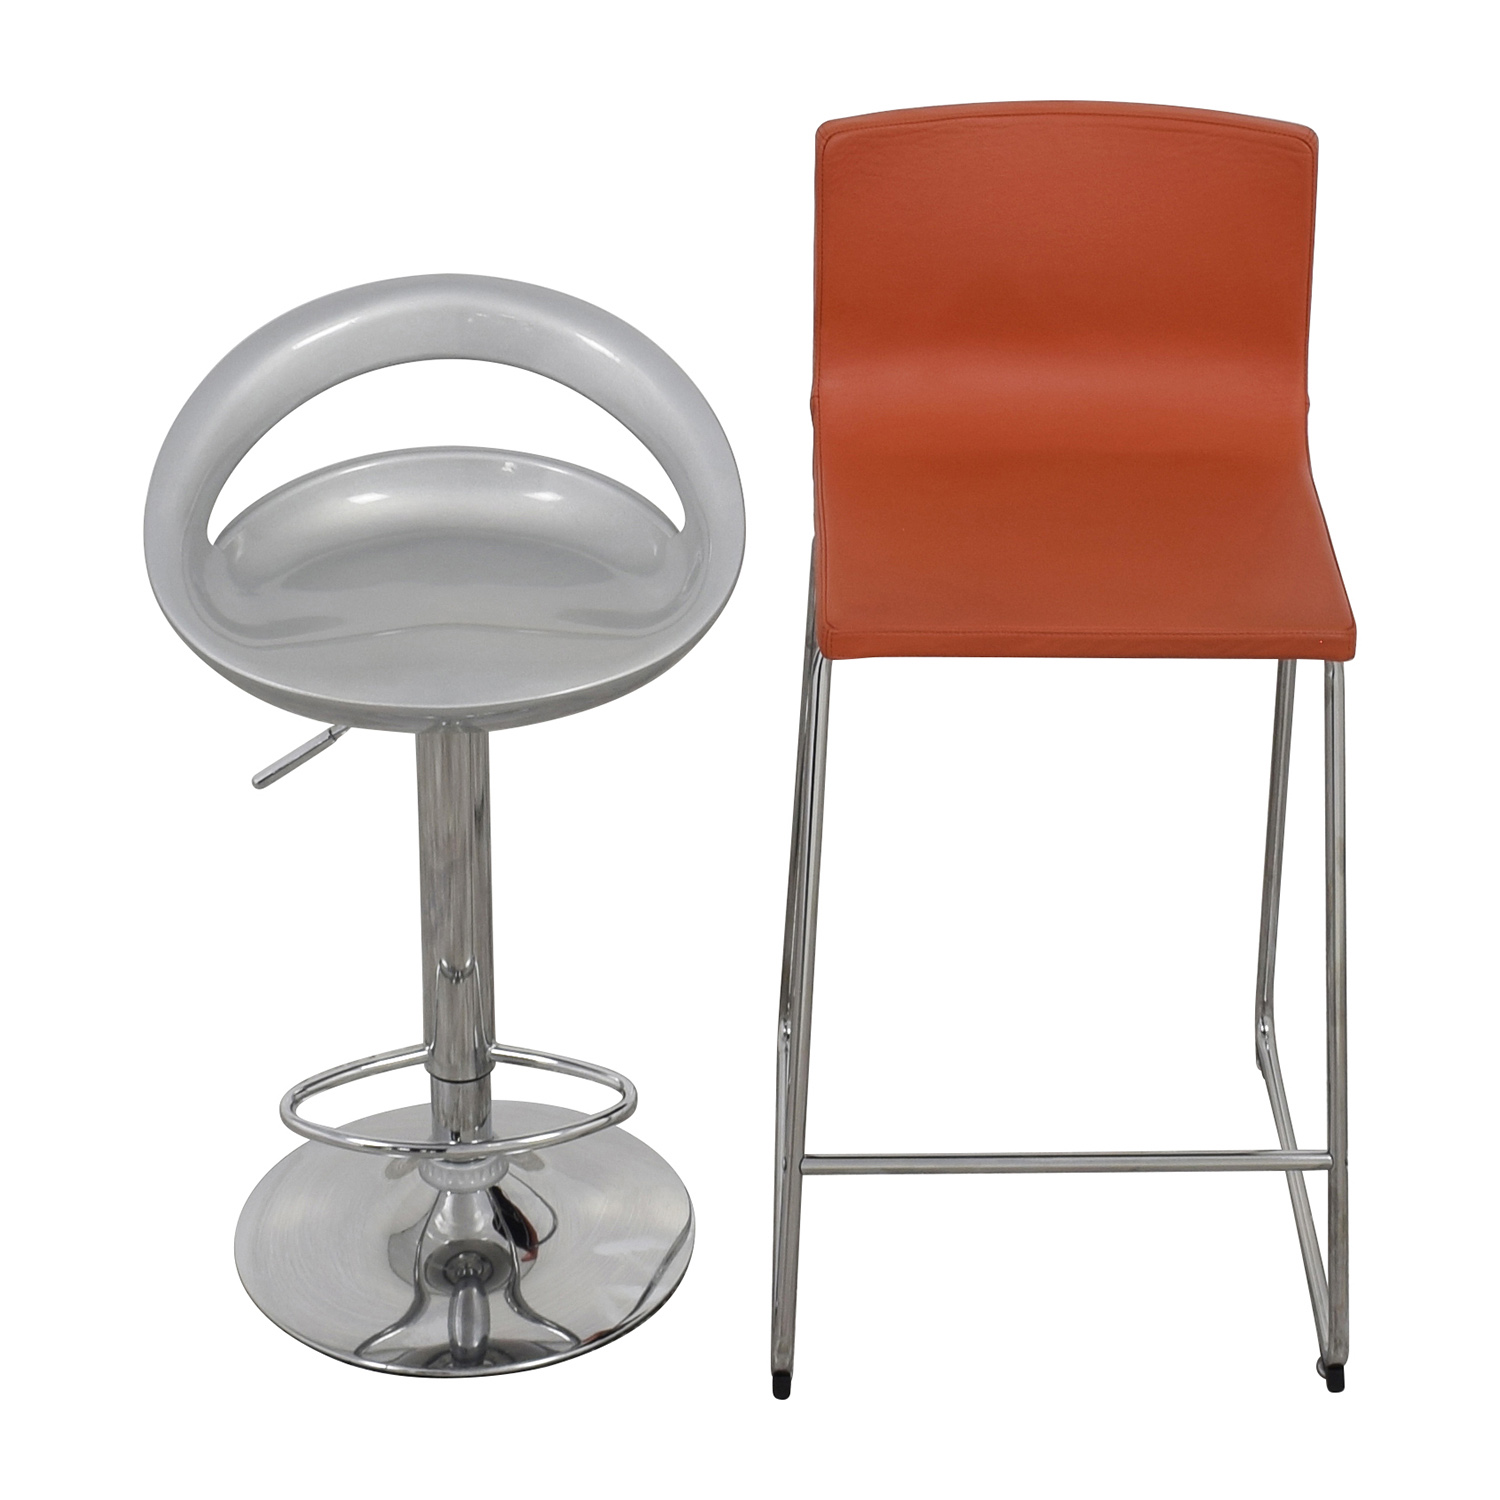 75 Off Pair Of Modern Orange And Silver Bar Stools Chairs